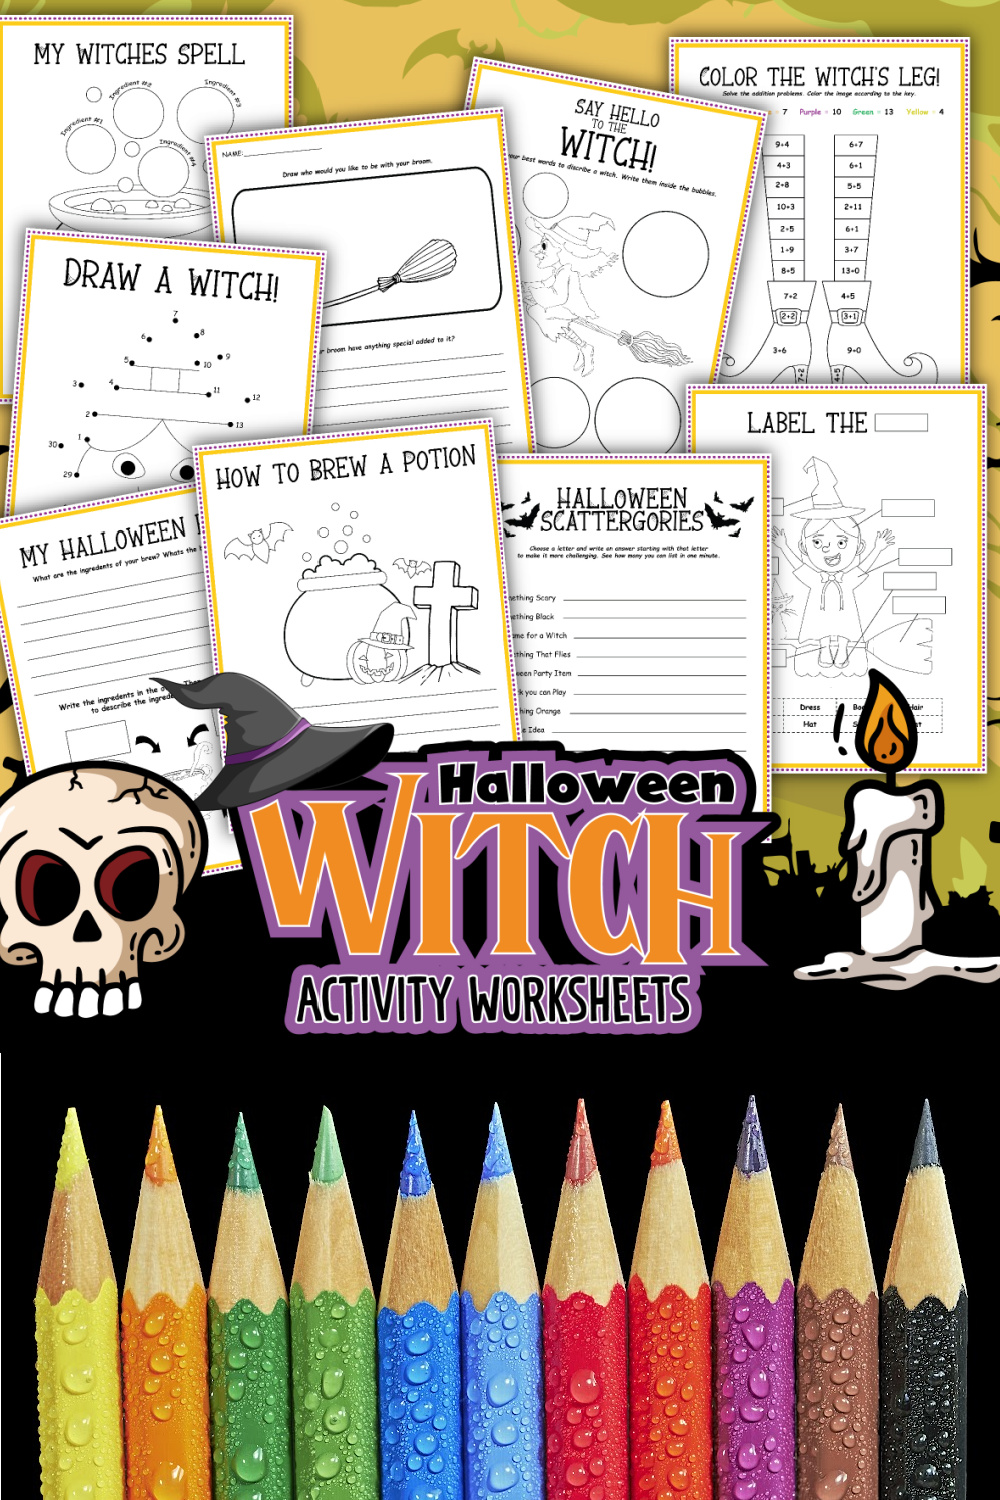 These Free Halloween themed Witch activity worksheets are a spooktacular way to keep kids entertained this Halloween. Download, print, play!